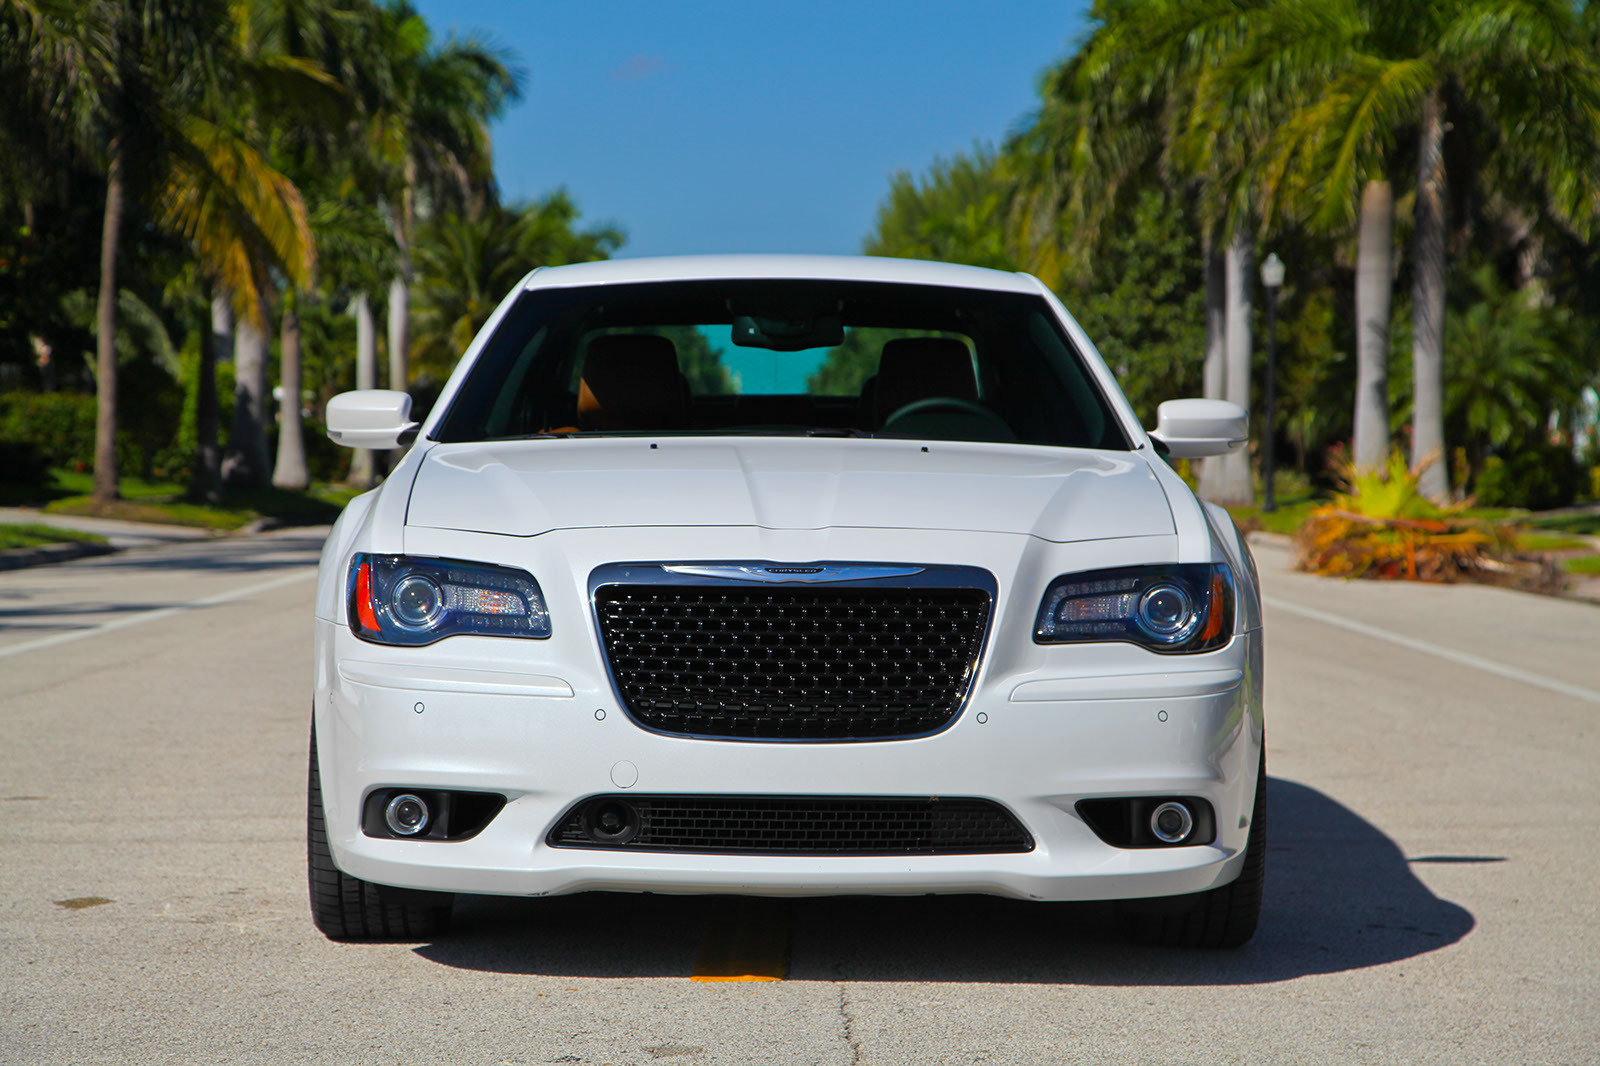 2013 chrysler 300 srt8 picture 528585 car review top speed. Cars Review. Best American Auto & Cars Review